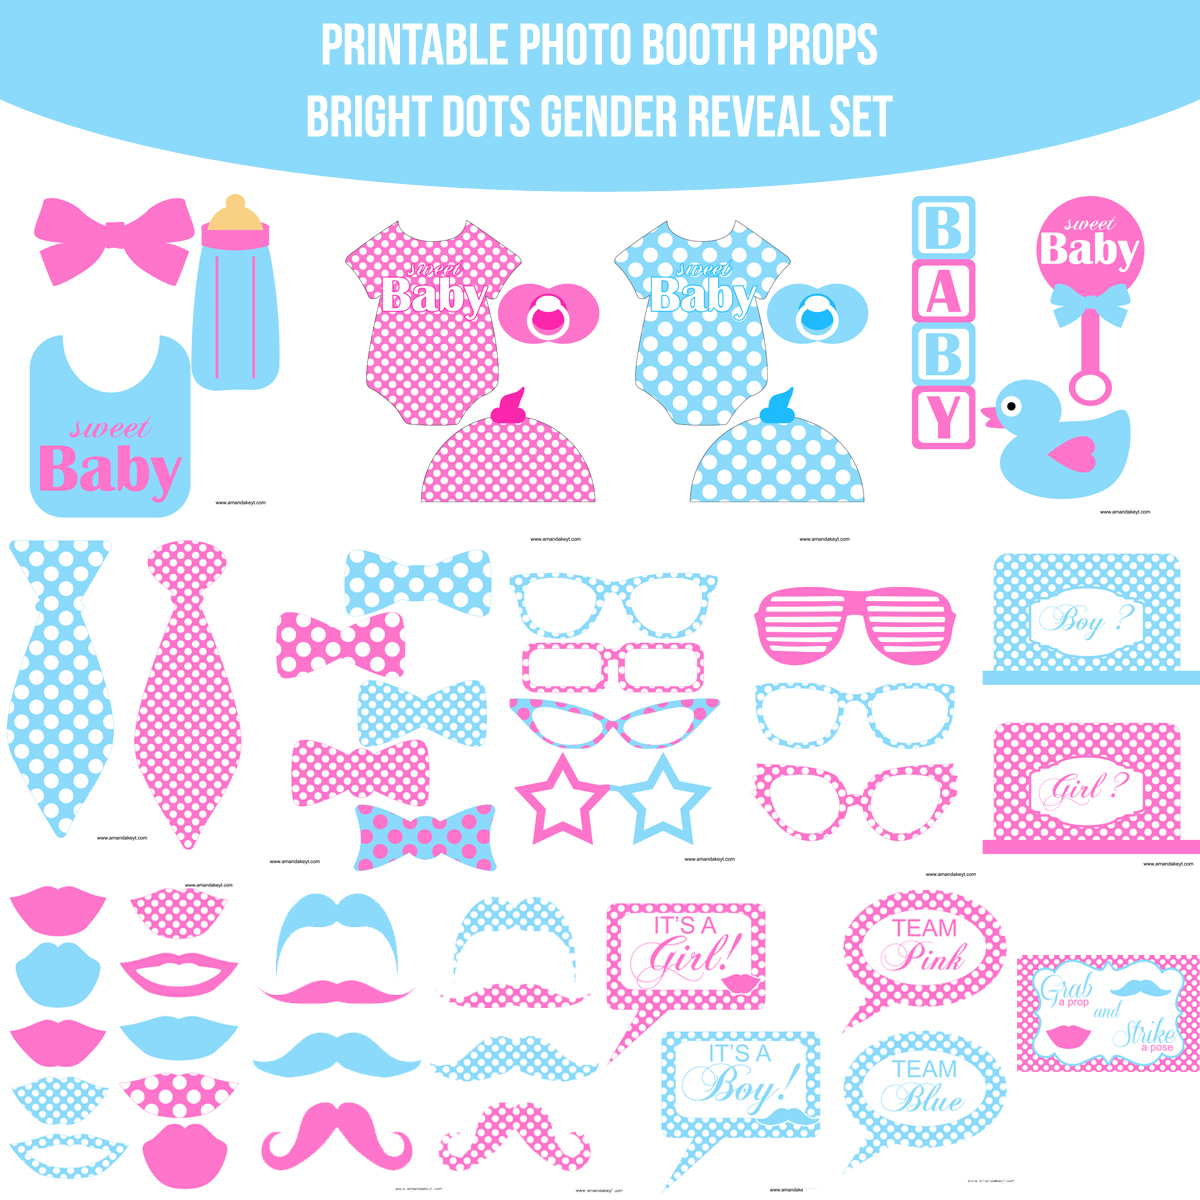 graphic about Baby Shower Photo Booth Props Printable known as Fast Down load Youngster Gender Explain Dazzling Dots Printable Image Booth Prop Fastened Amanda Keyt Printable Plans